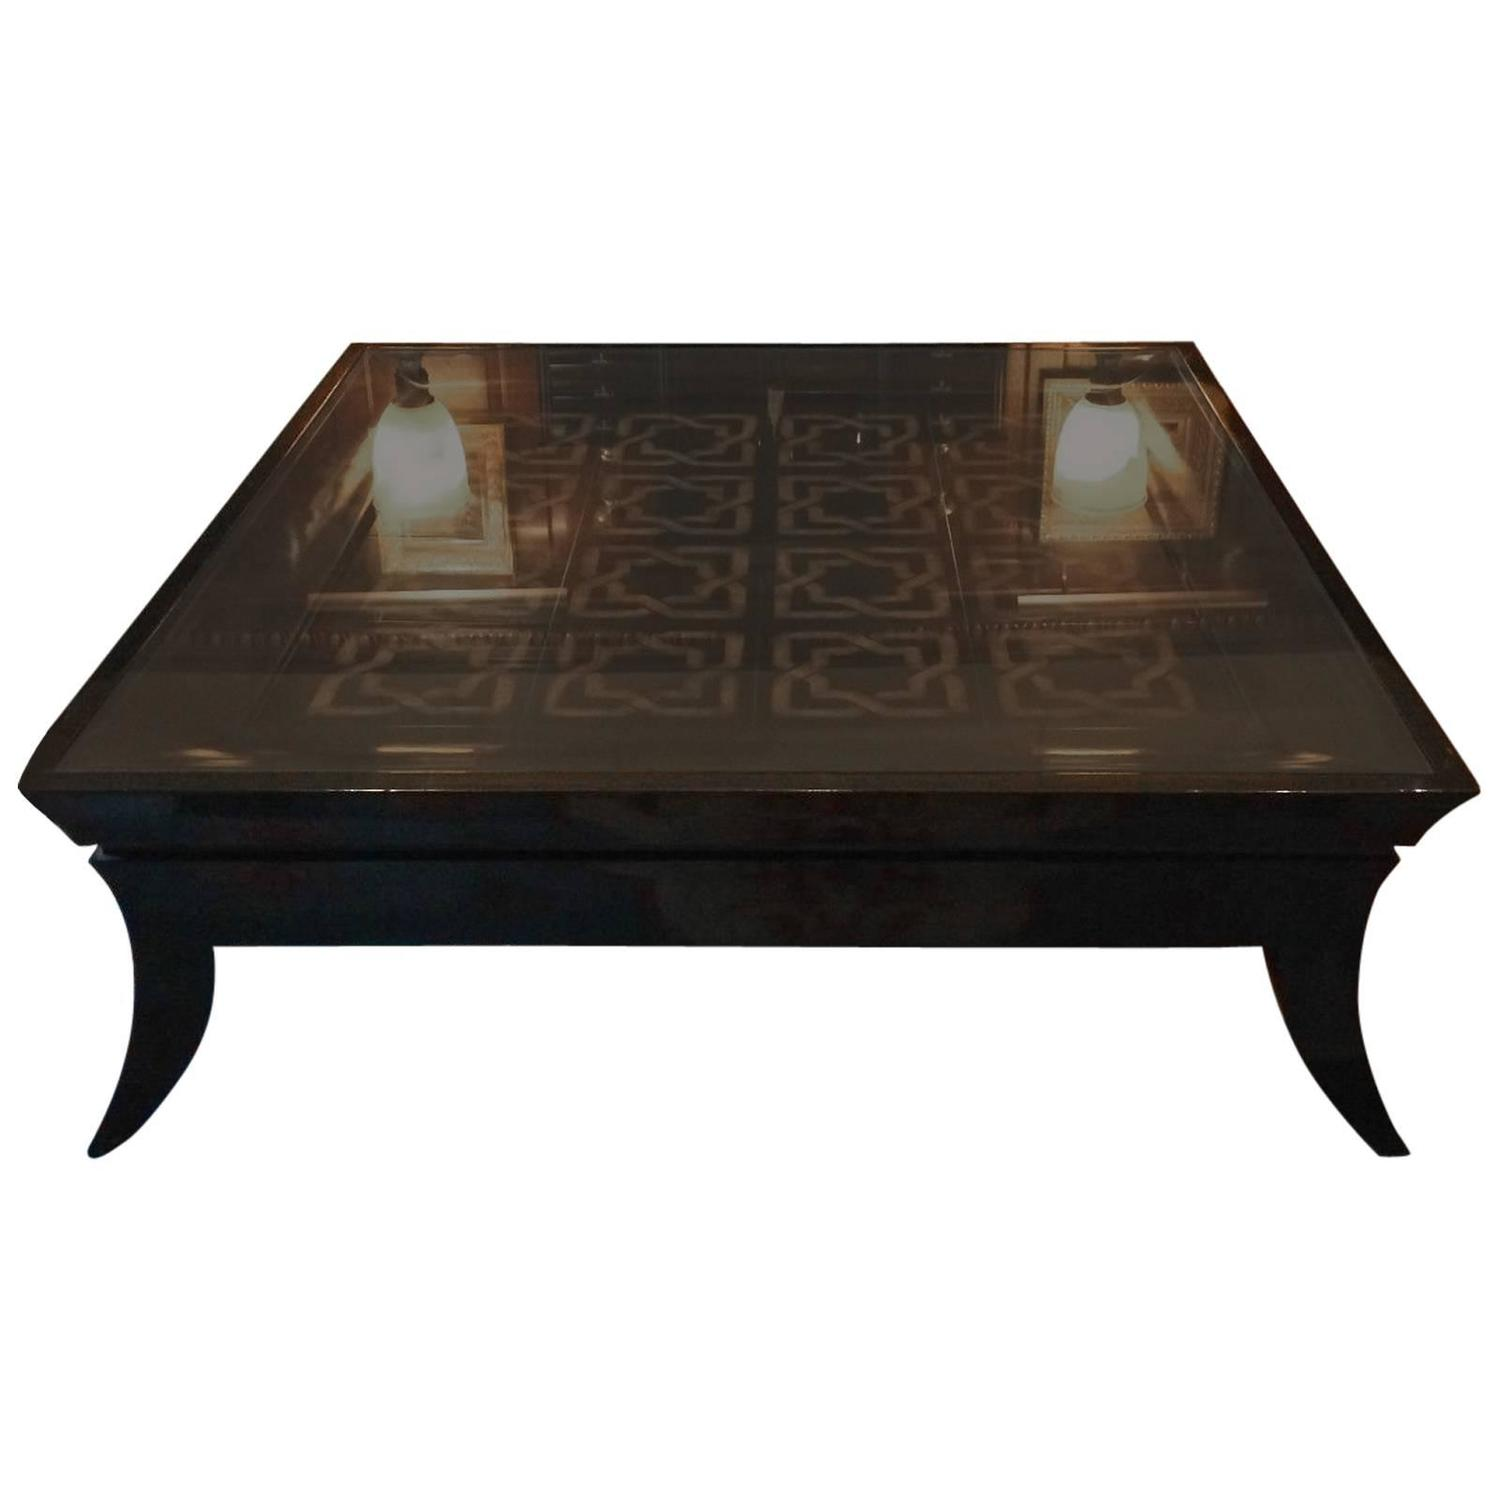 Large Coffee Table Glass Topped Tiled Modern At 1stdibs